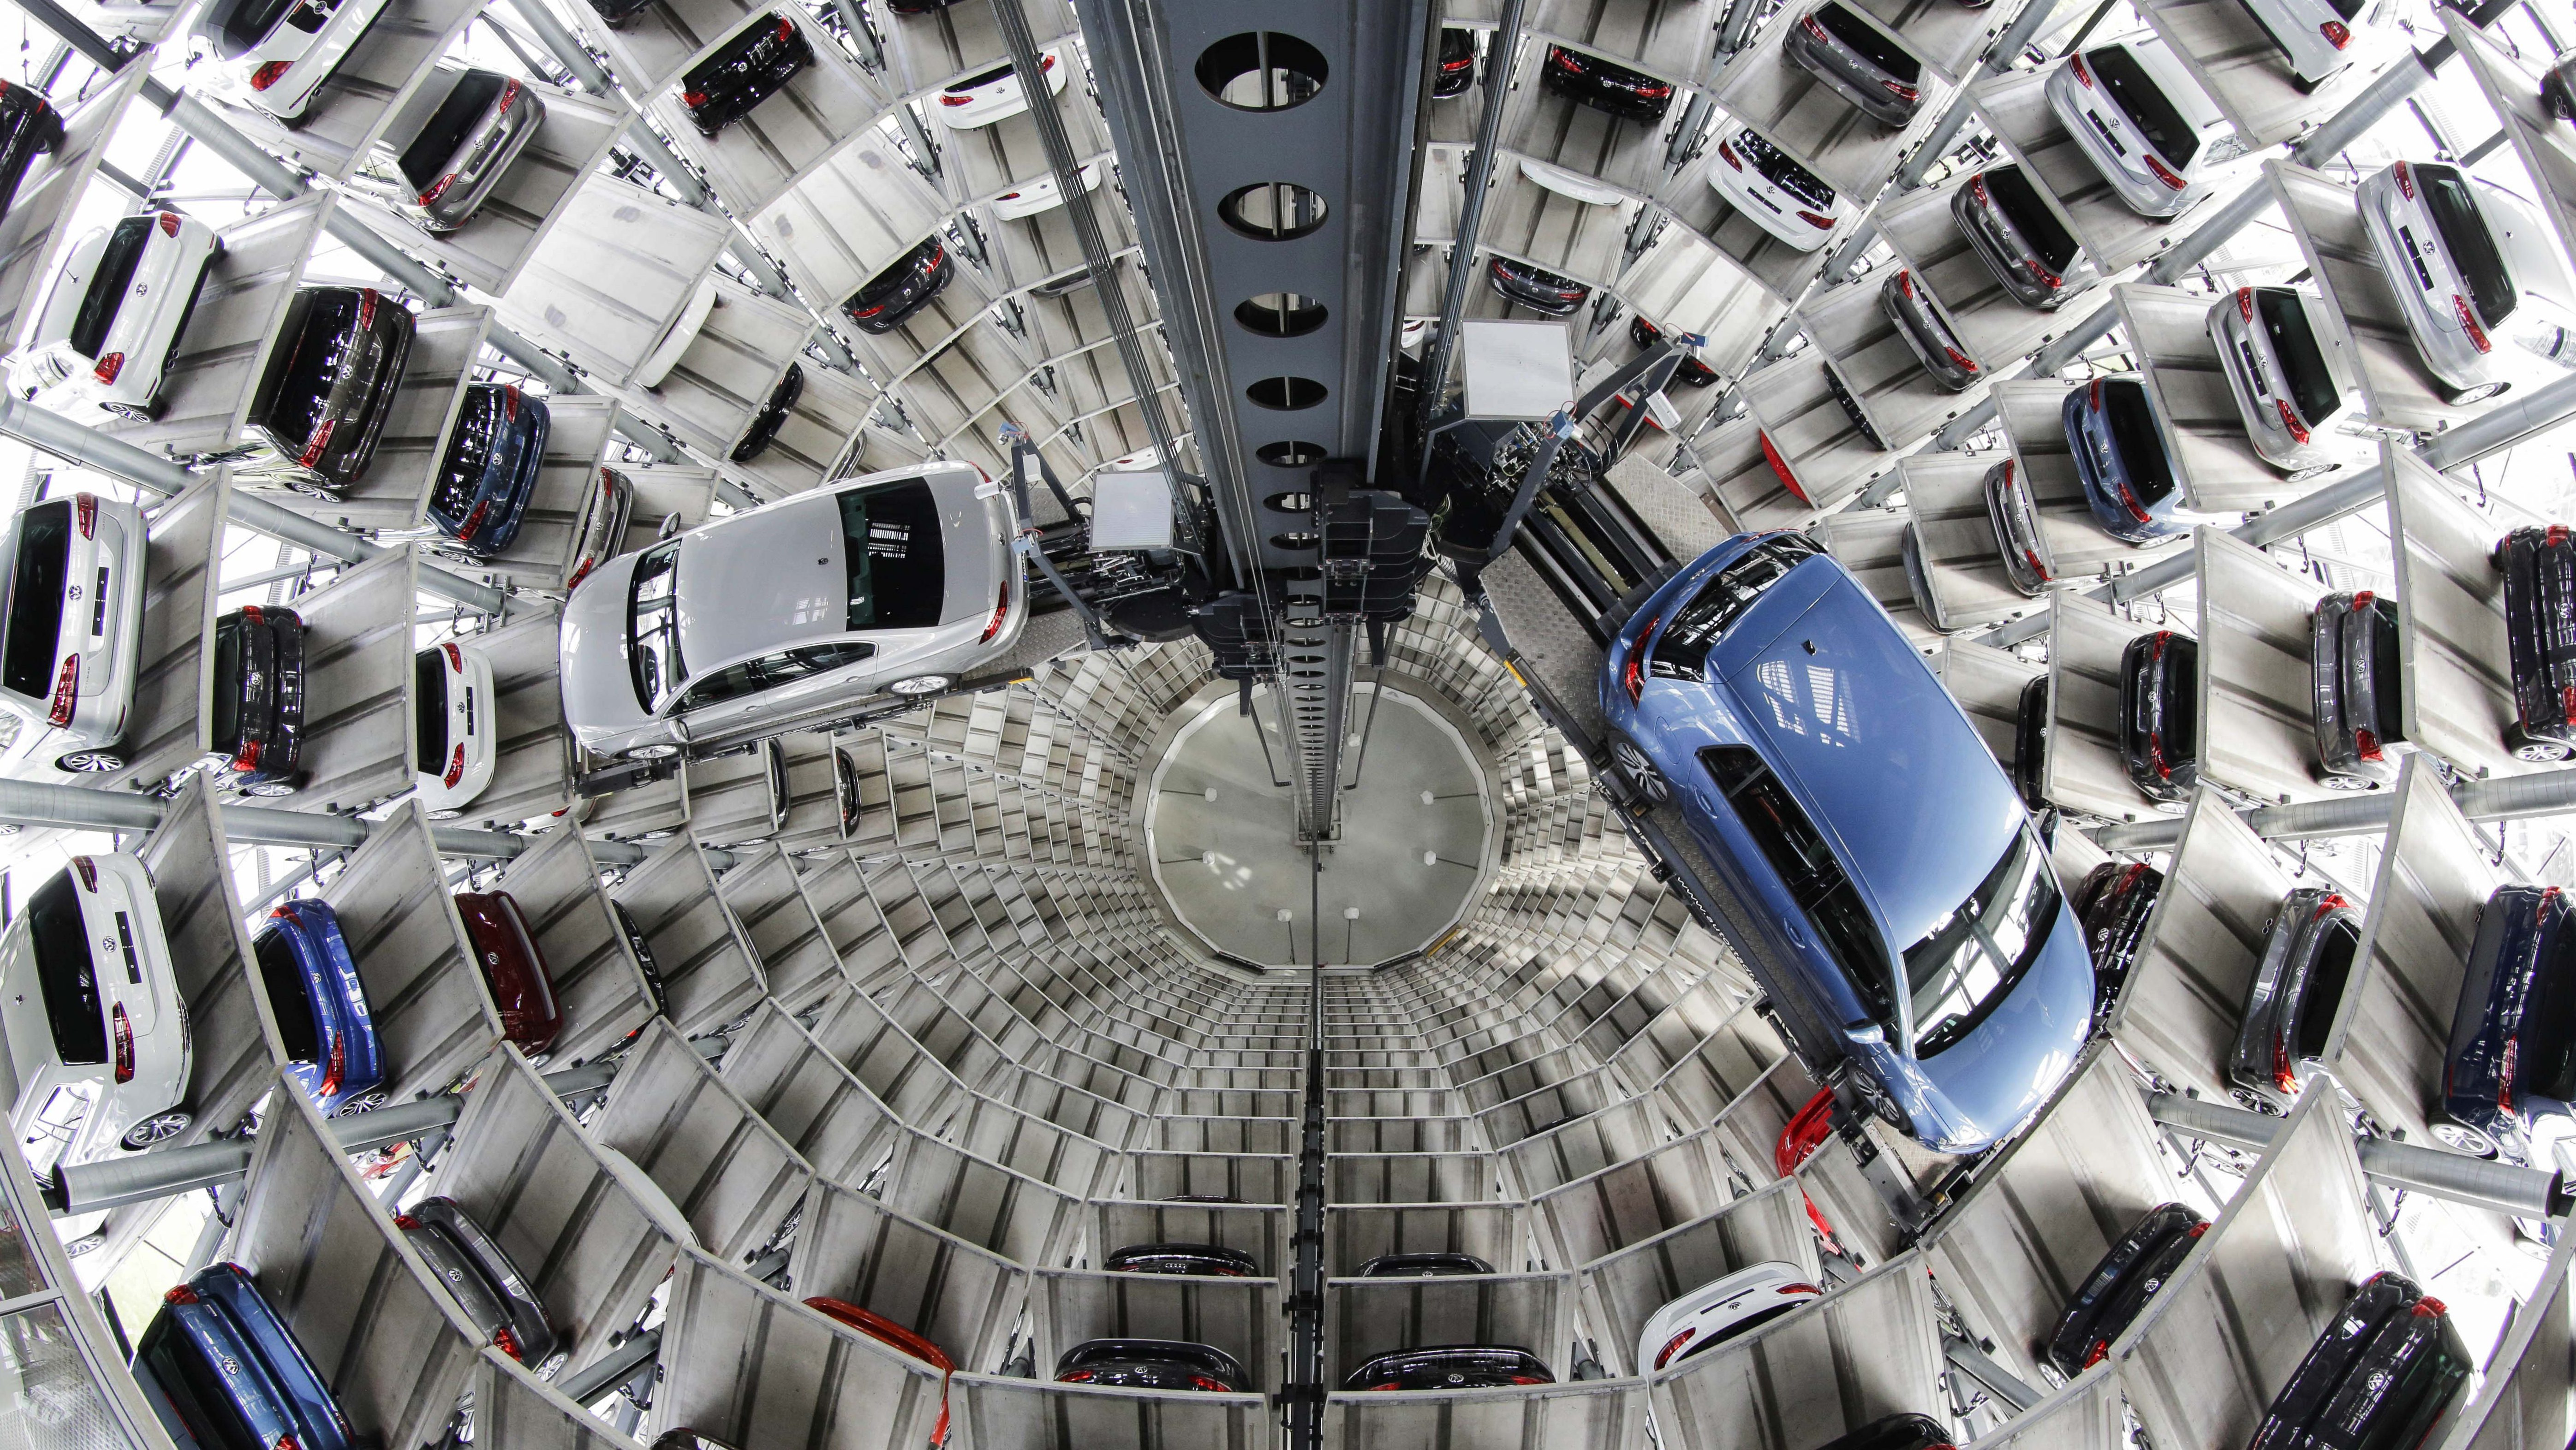 Volkswagen cars in a storage tower